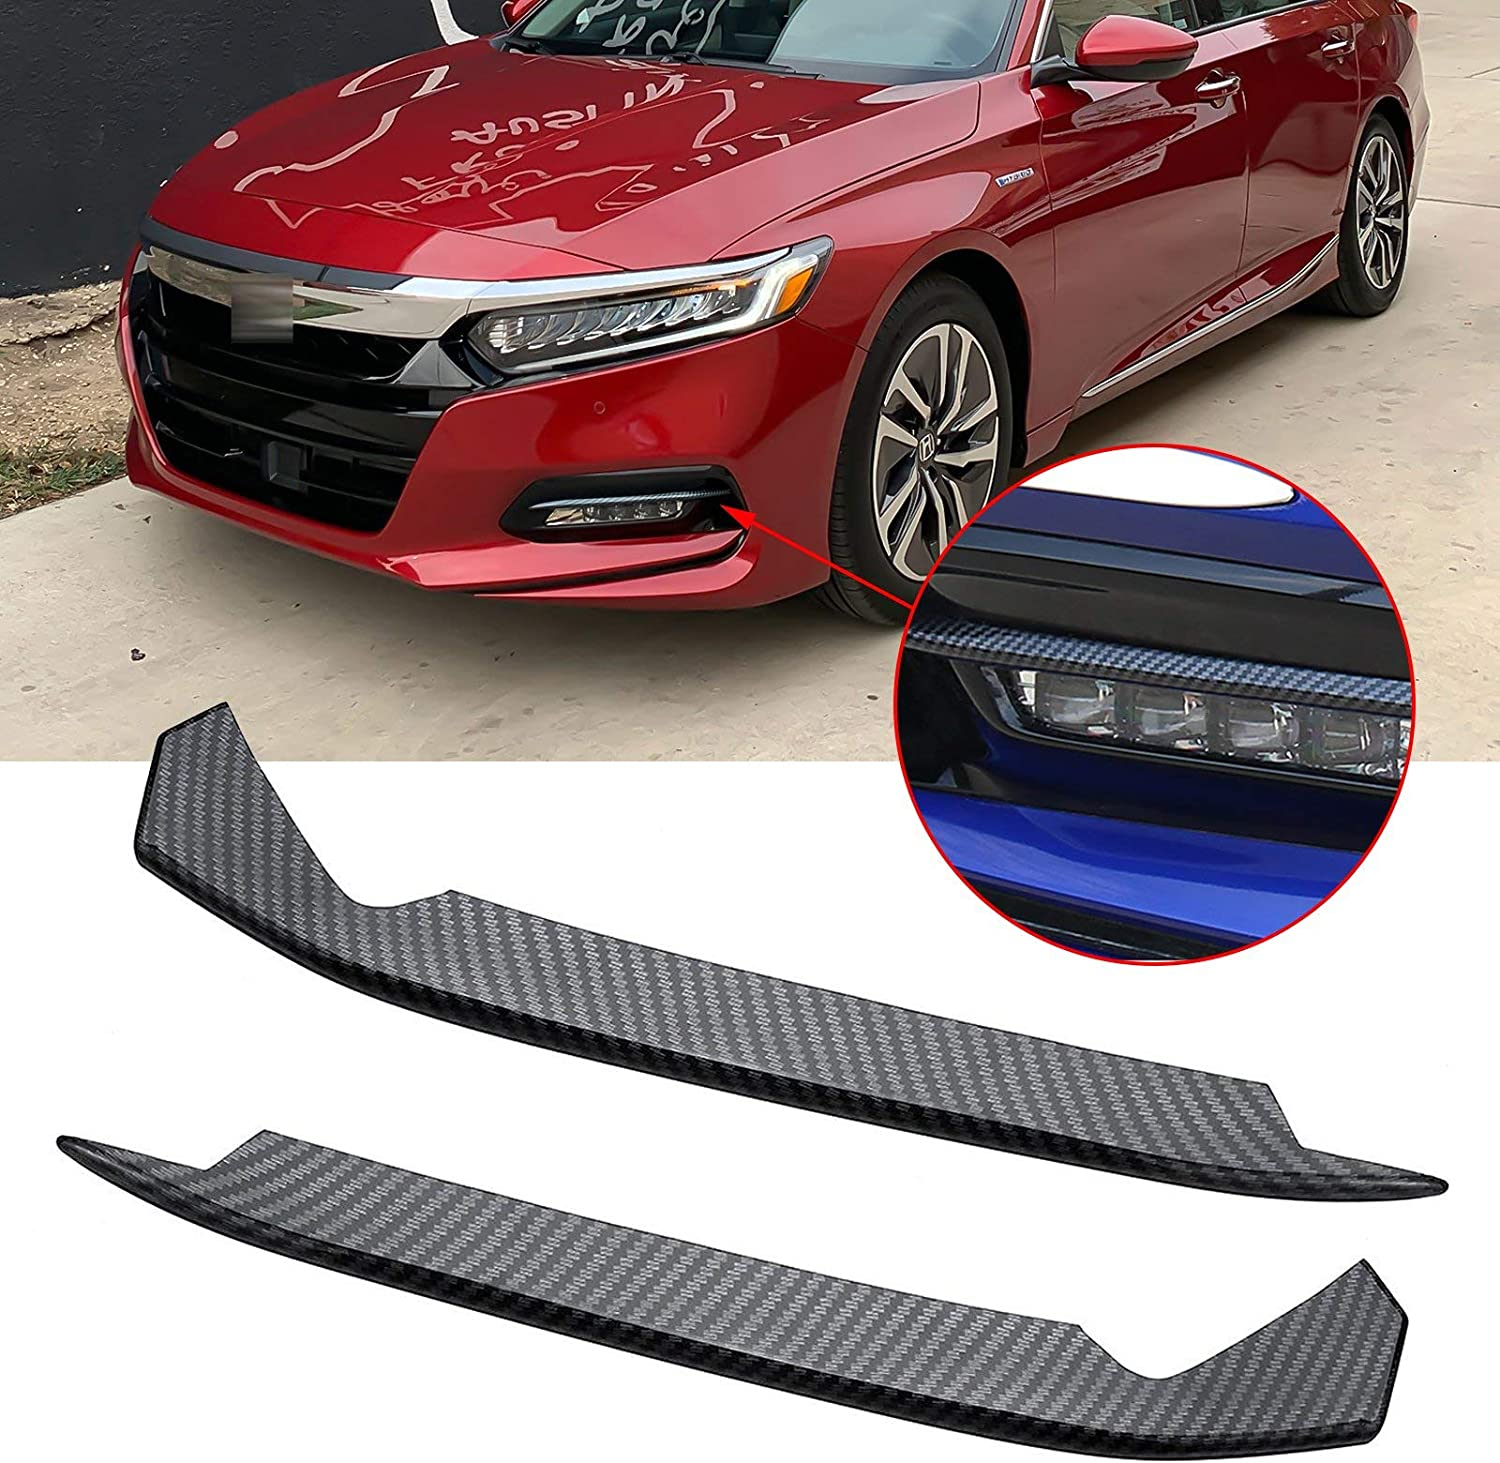 Xotic Tech Carbon Fiber Texture Dashboard Air Vent AC Outlet Frame Overlay Trim Decor Cover for Honda Accord 2018 2019 2020